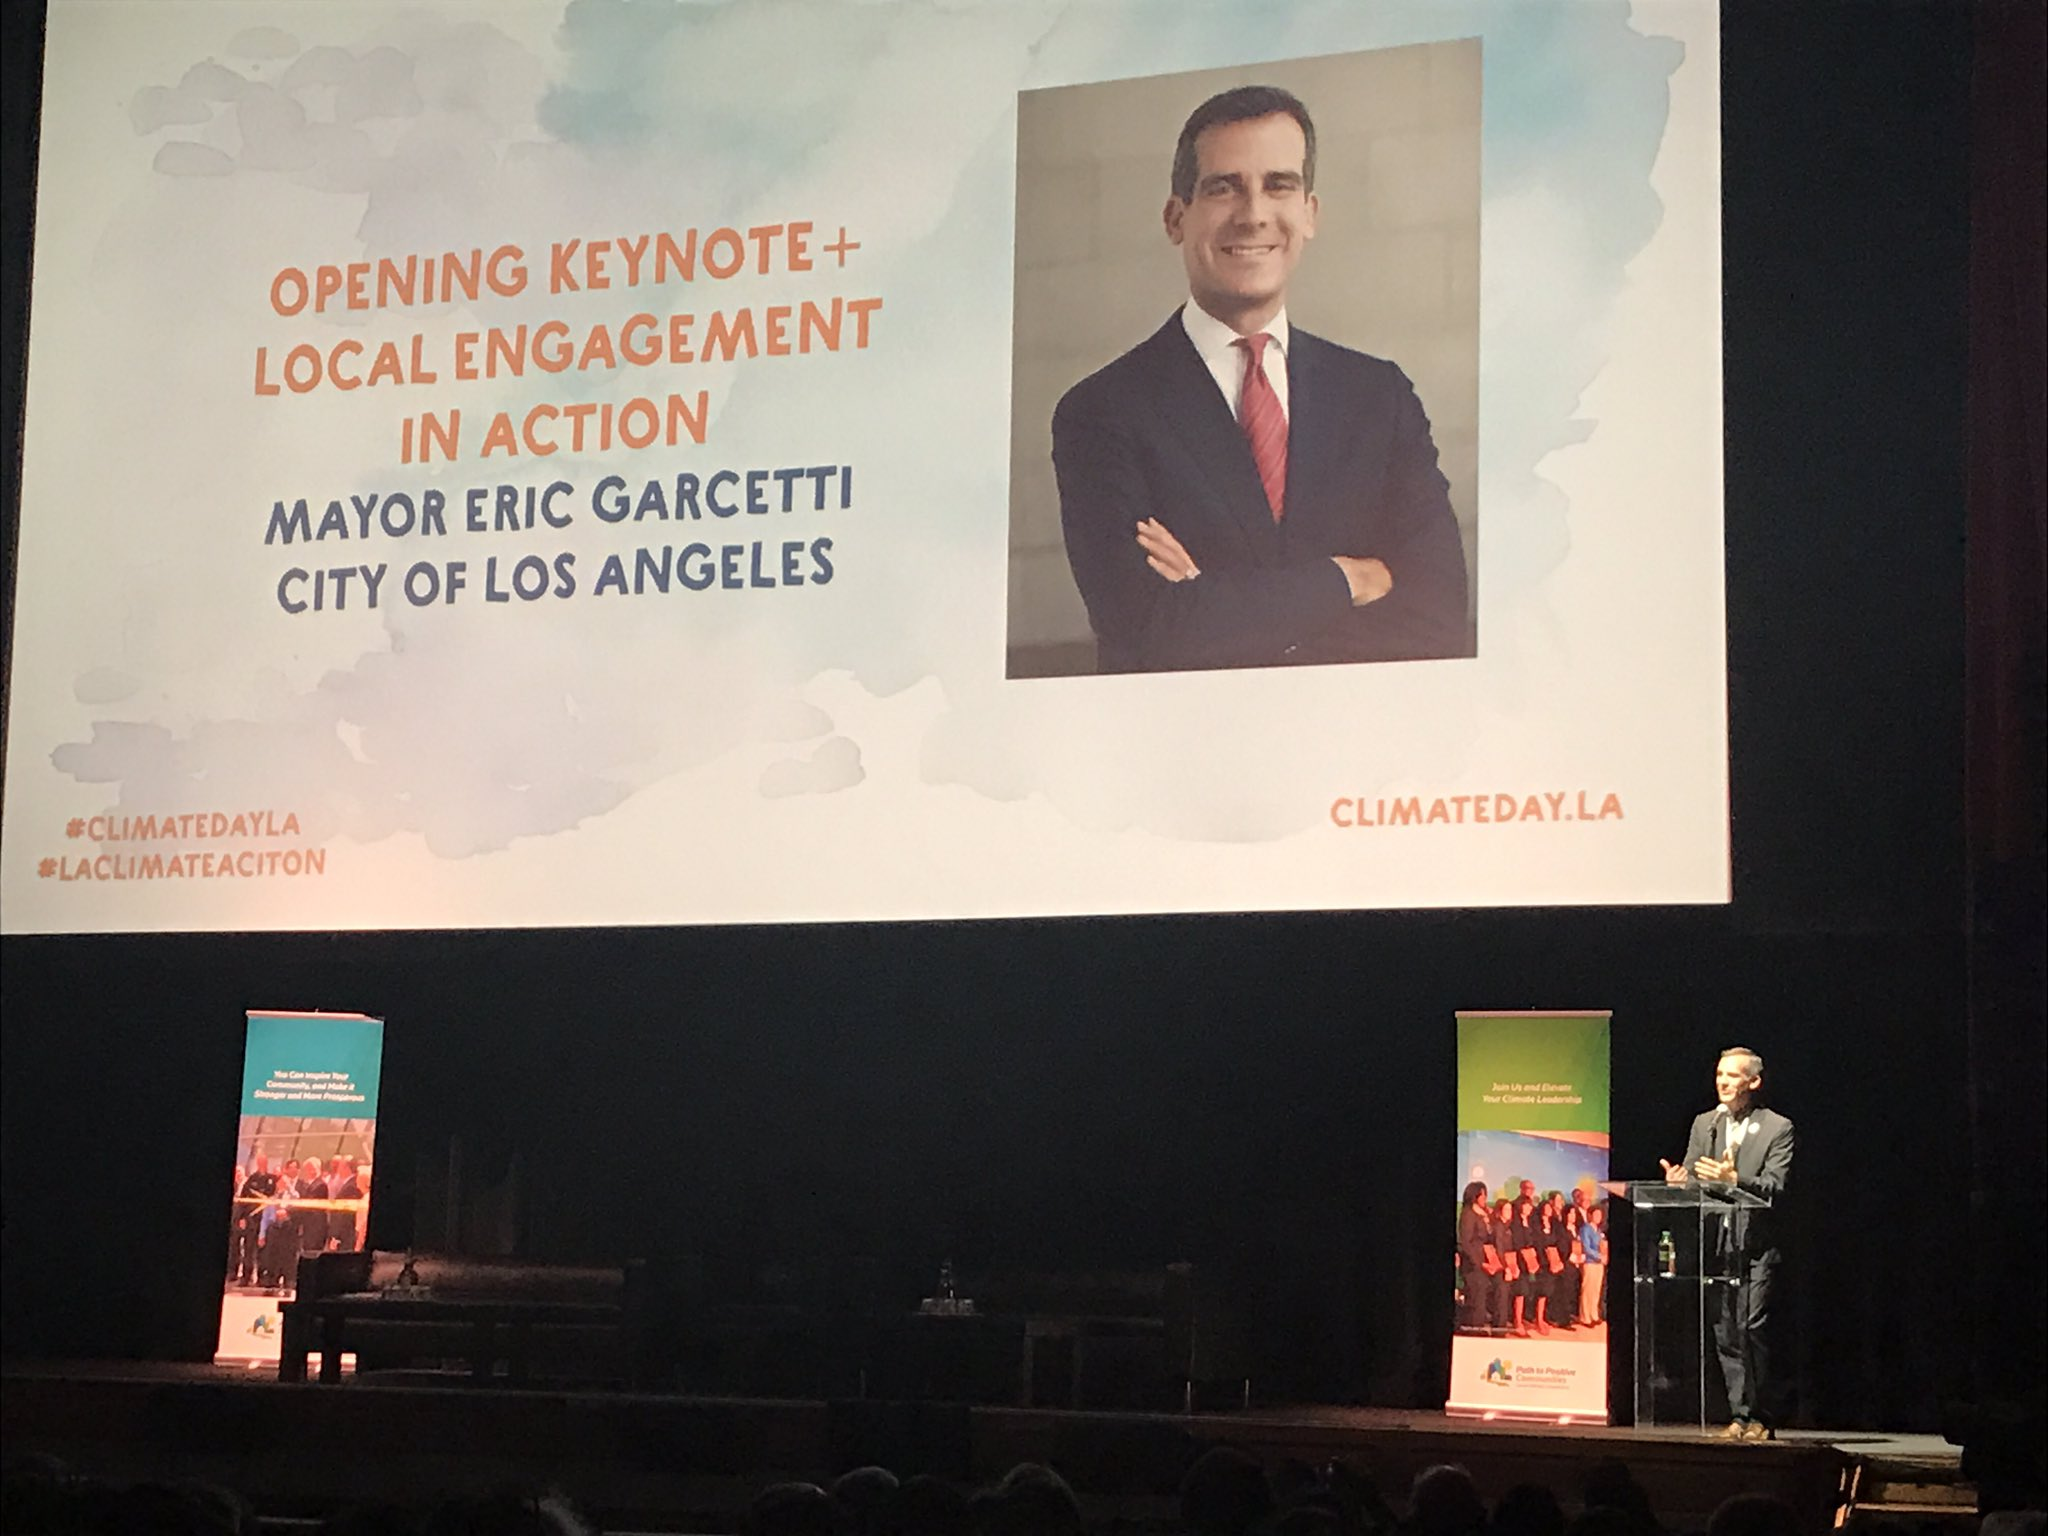 """There is no more urgent threat in the world than climate change."" LA Mayor @ericgarcetti #ClimateDayLA https://t.co/gn0AIFheG0"